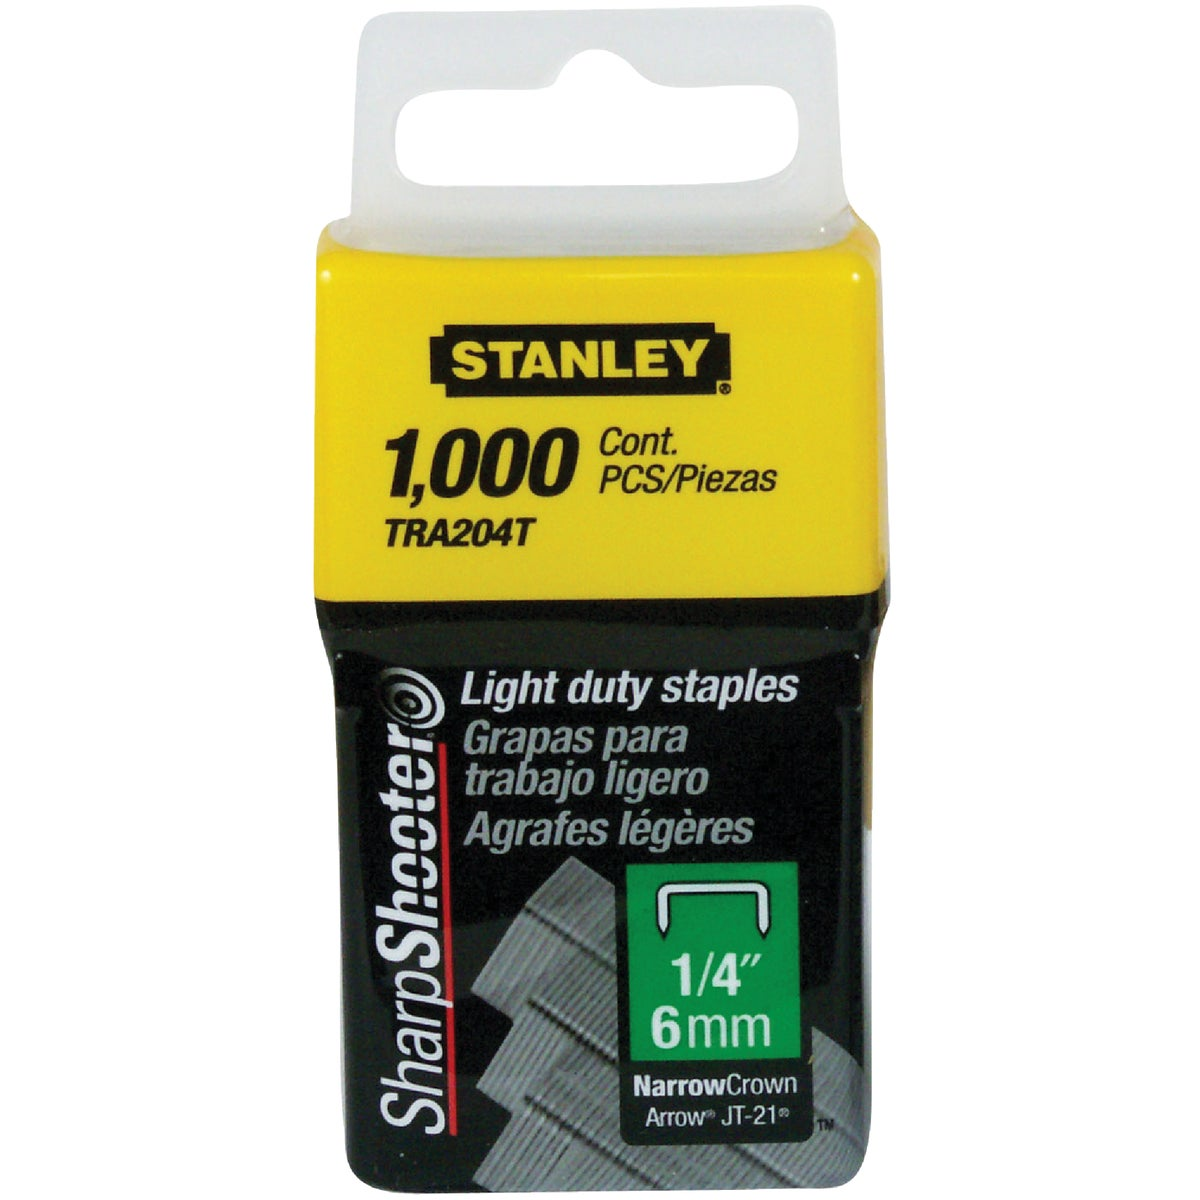 "1/4"" LIGHT DUTY STAPLE - TRA204T by Stanley Tools"